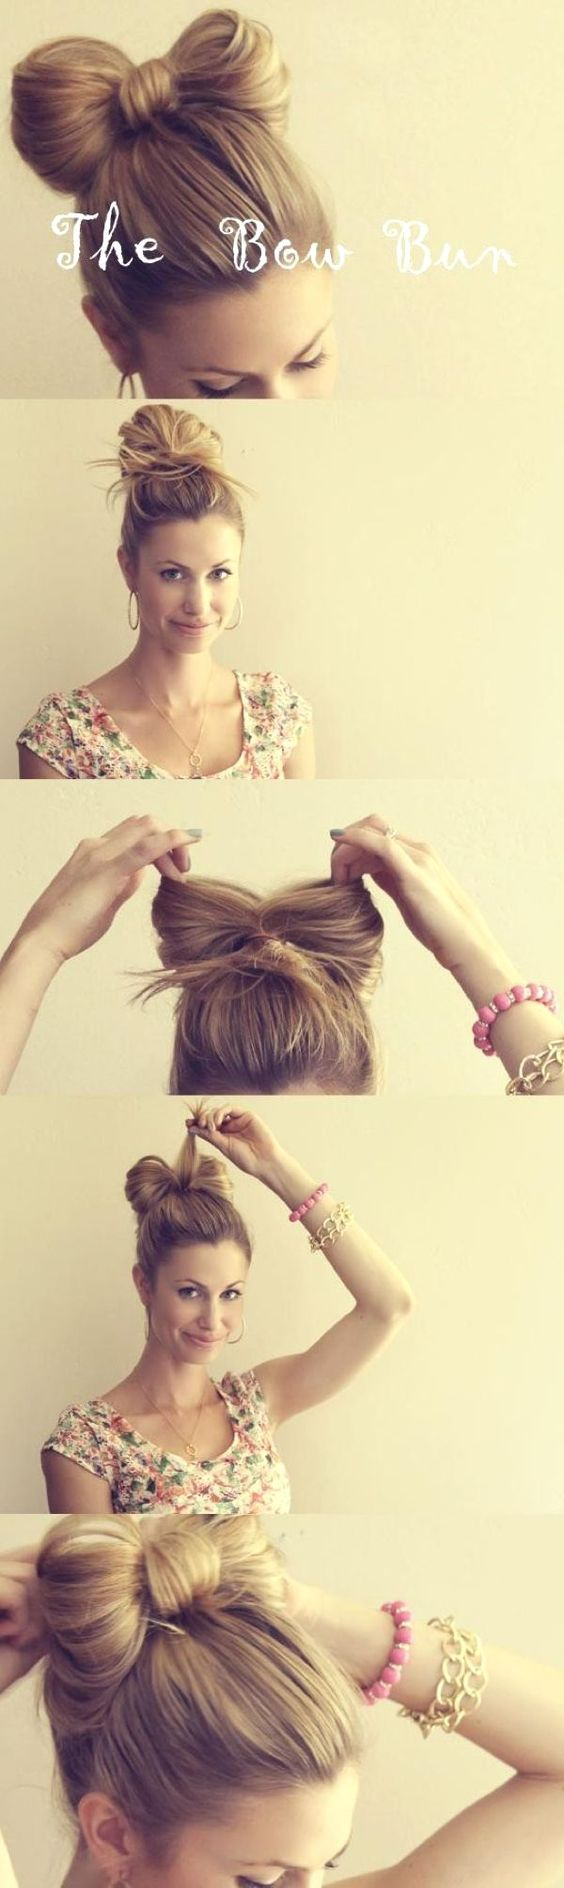 25 Cool Girl Hairstyles You Need To Try